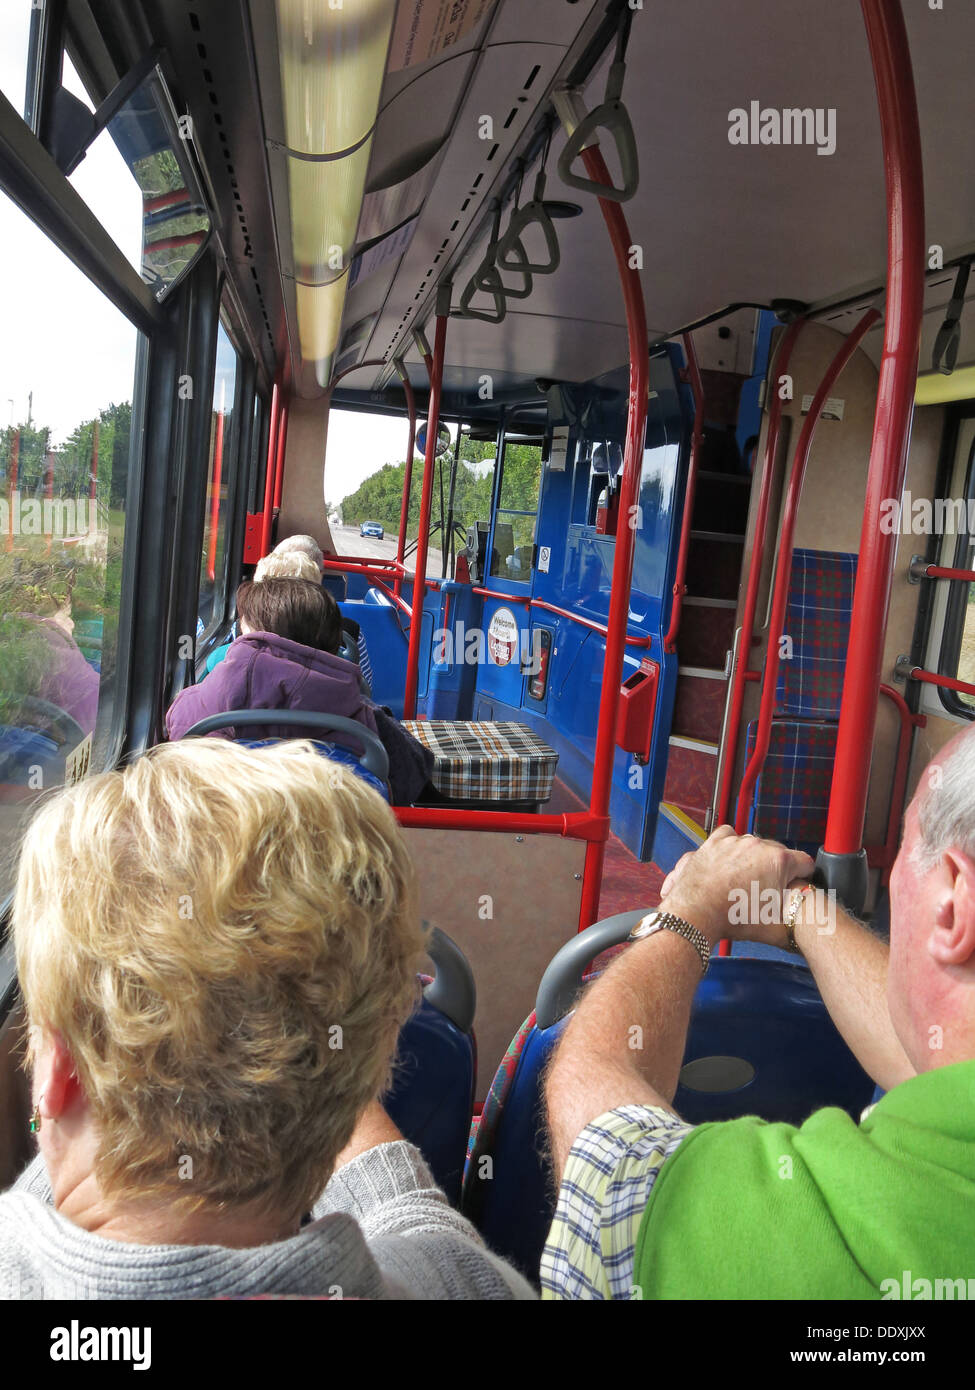 passenger,service,services,frequent,happy,economical,comprehensive,double,decker,city,centre,subsidised,Lothian Transport,public transport,GoTonySmith,@HotpixUK,Buy Pictures of,Buy Images Of,Images of,Stock Images